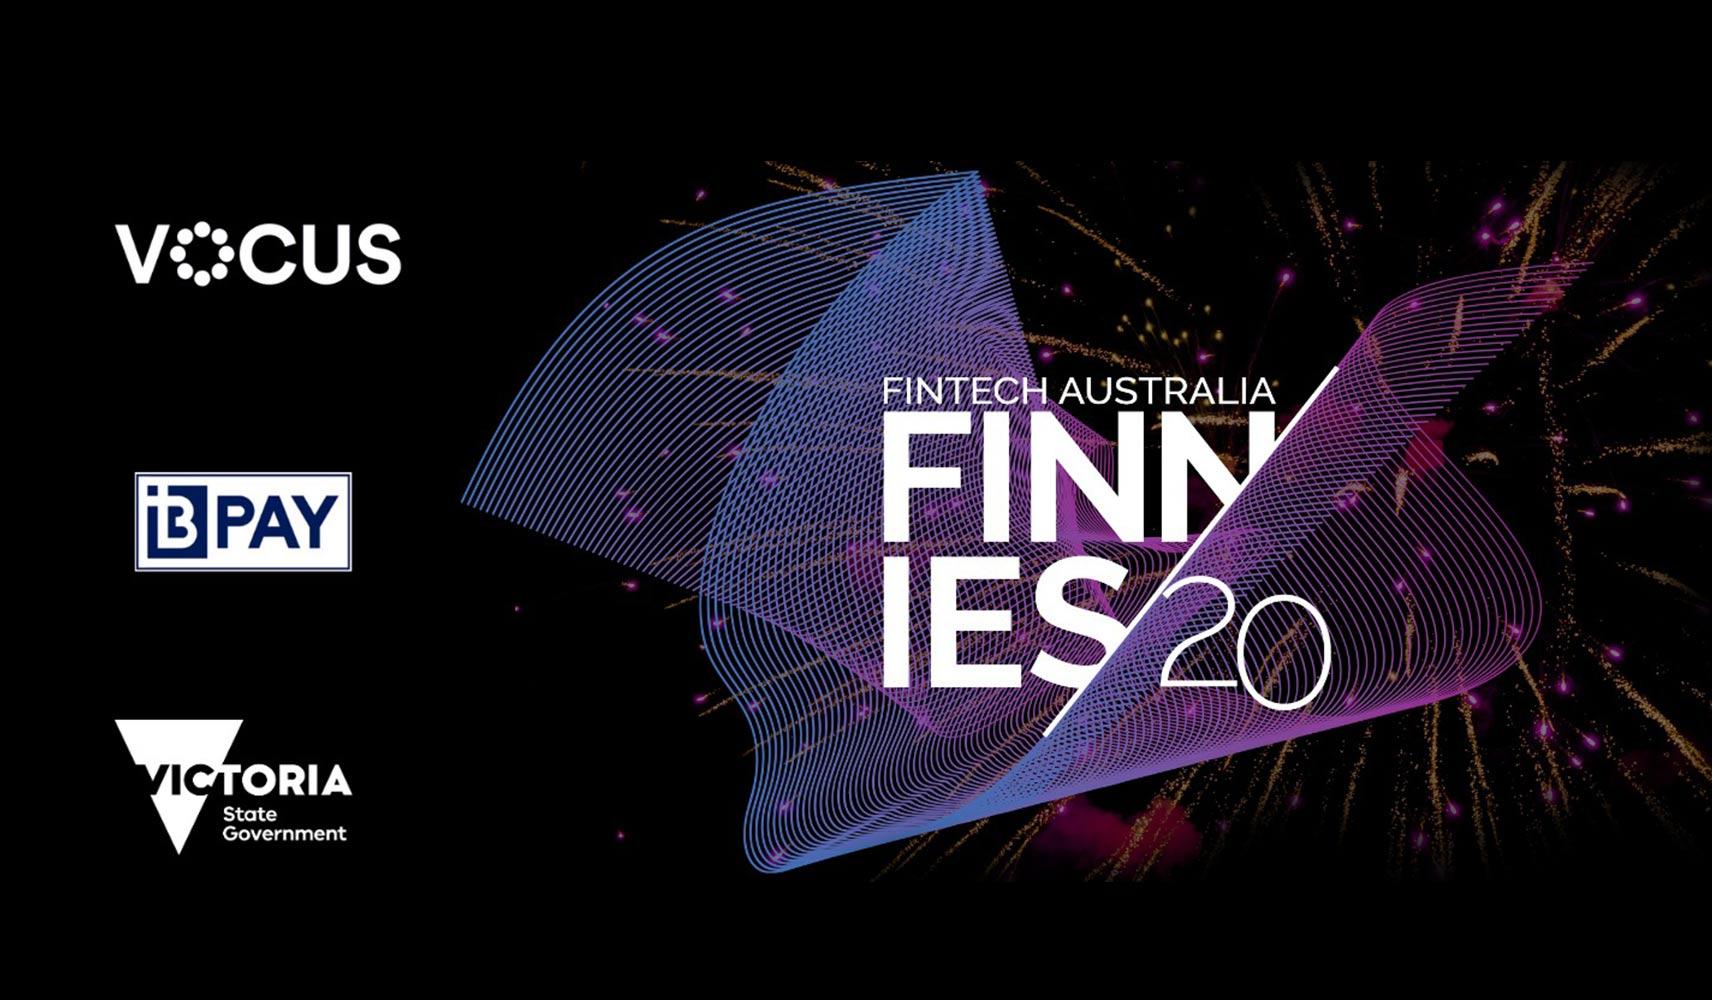 SendGold recognised as a finalist at Fintech Australia's Finnies 2020